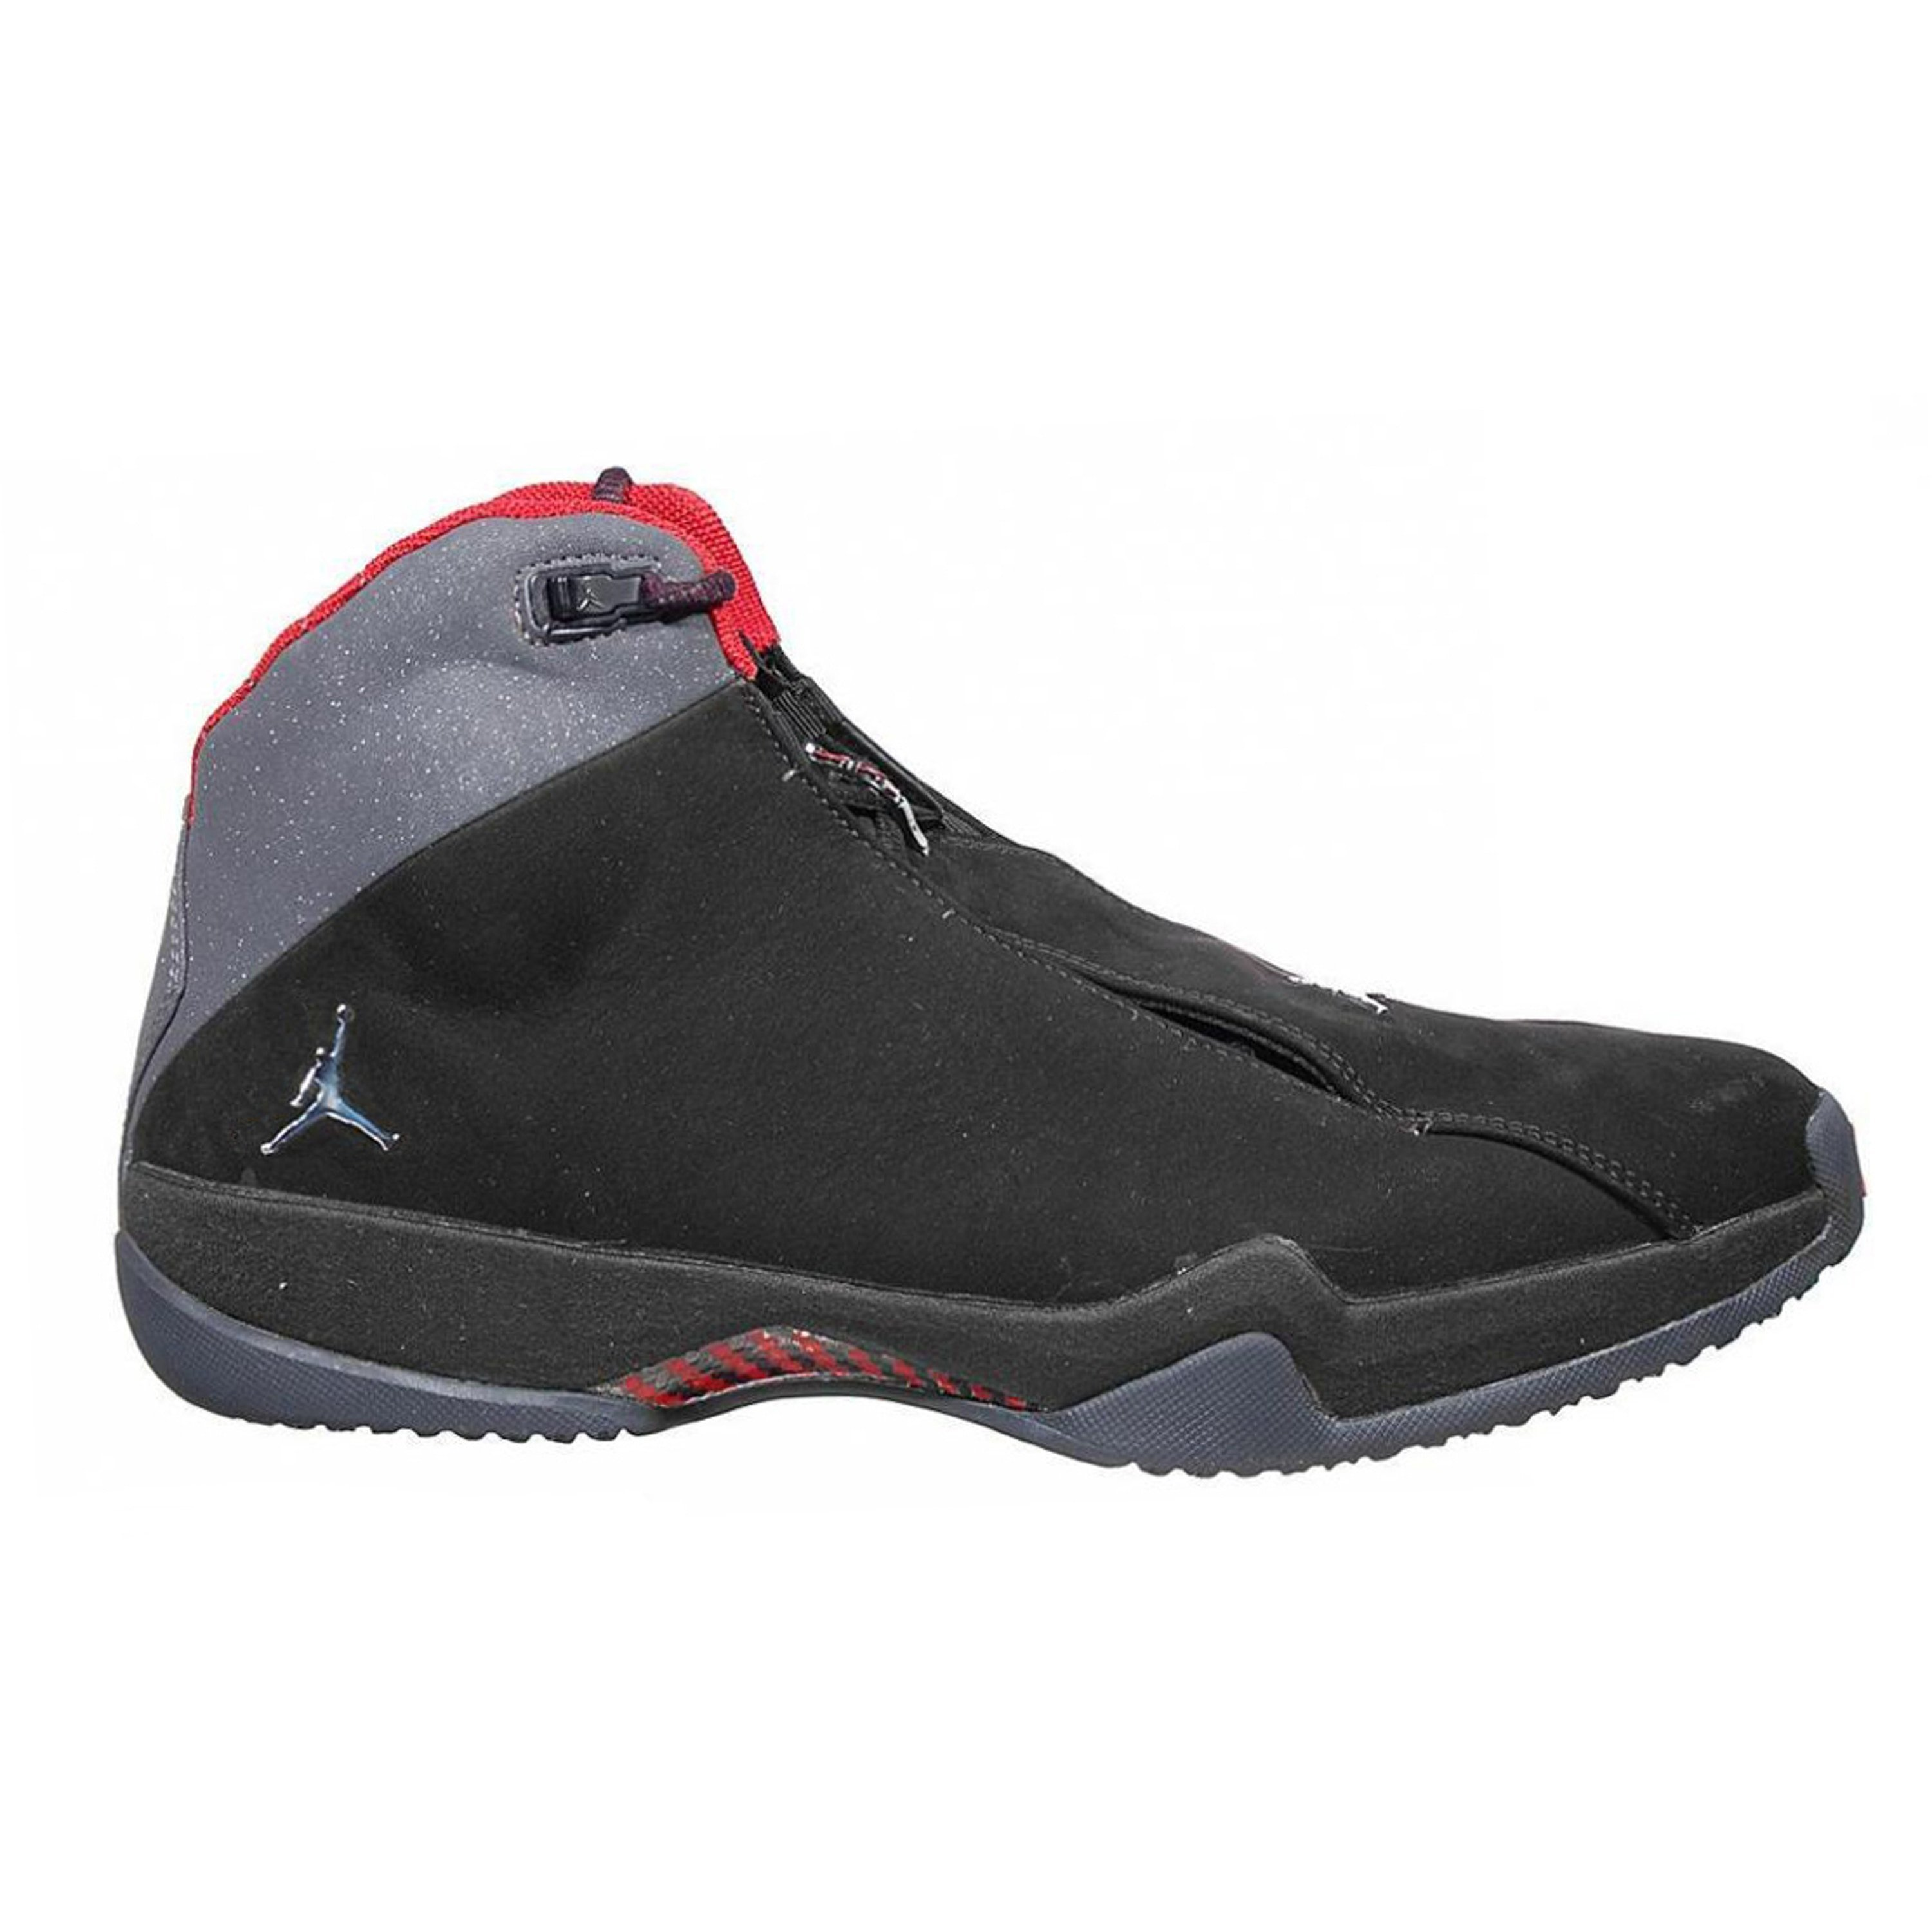 Jordan 21 PE Black Anthracite (GS) (314304-061)